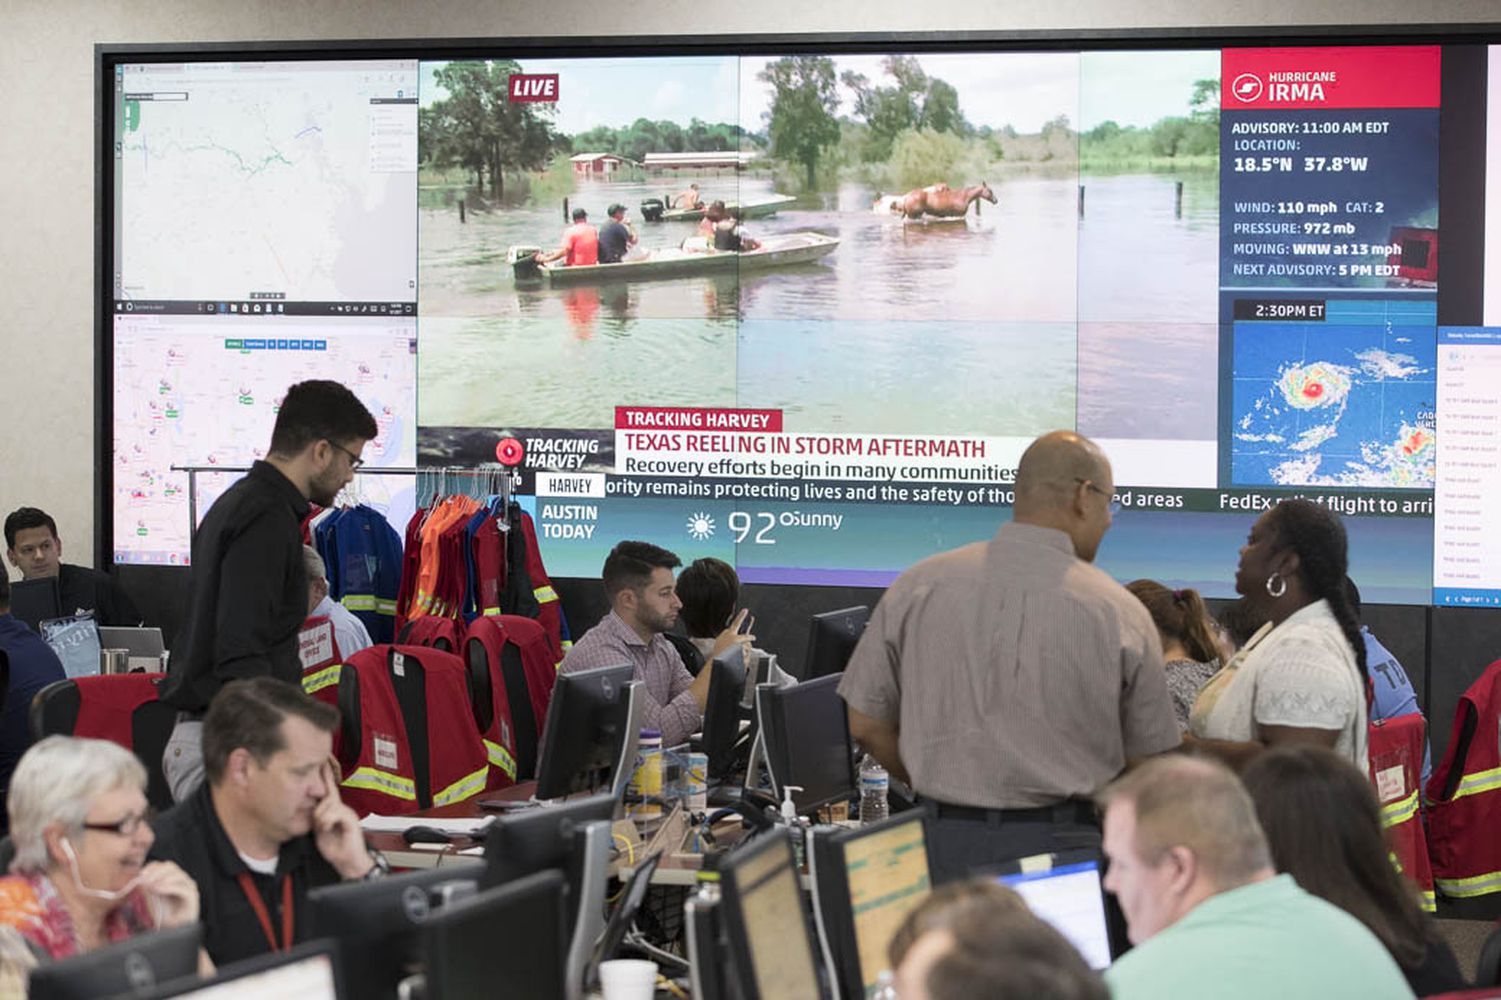 With video of southeast Texas flooding rolling in the background, state emergency workers tackle Hurricane Harvey-related crises at the Texas DPS Emergency Operations Center (EOC) on Sept. 1, 2017.